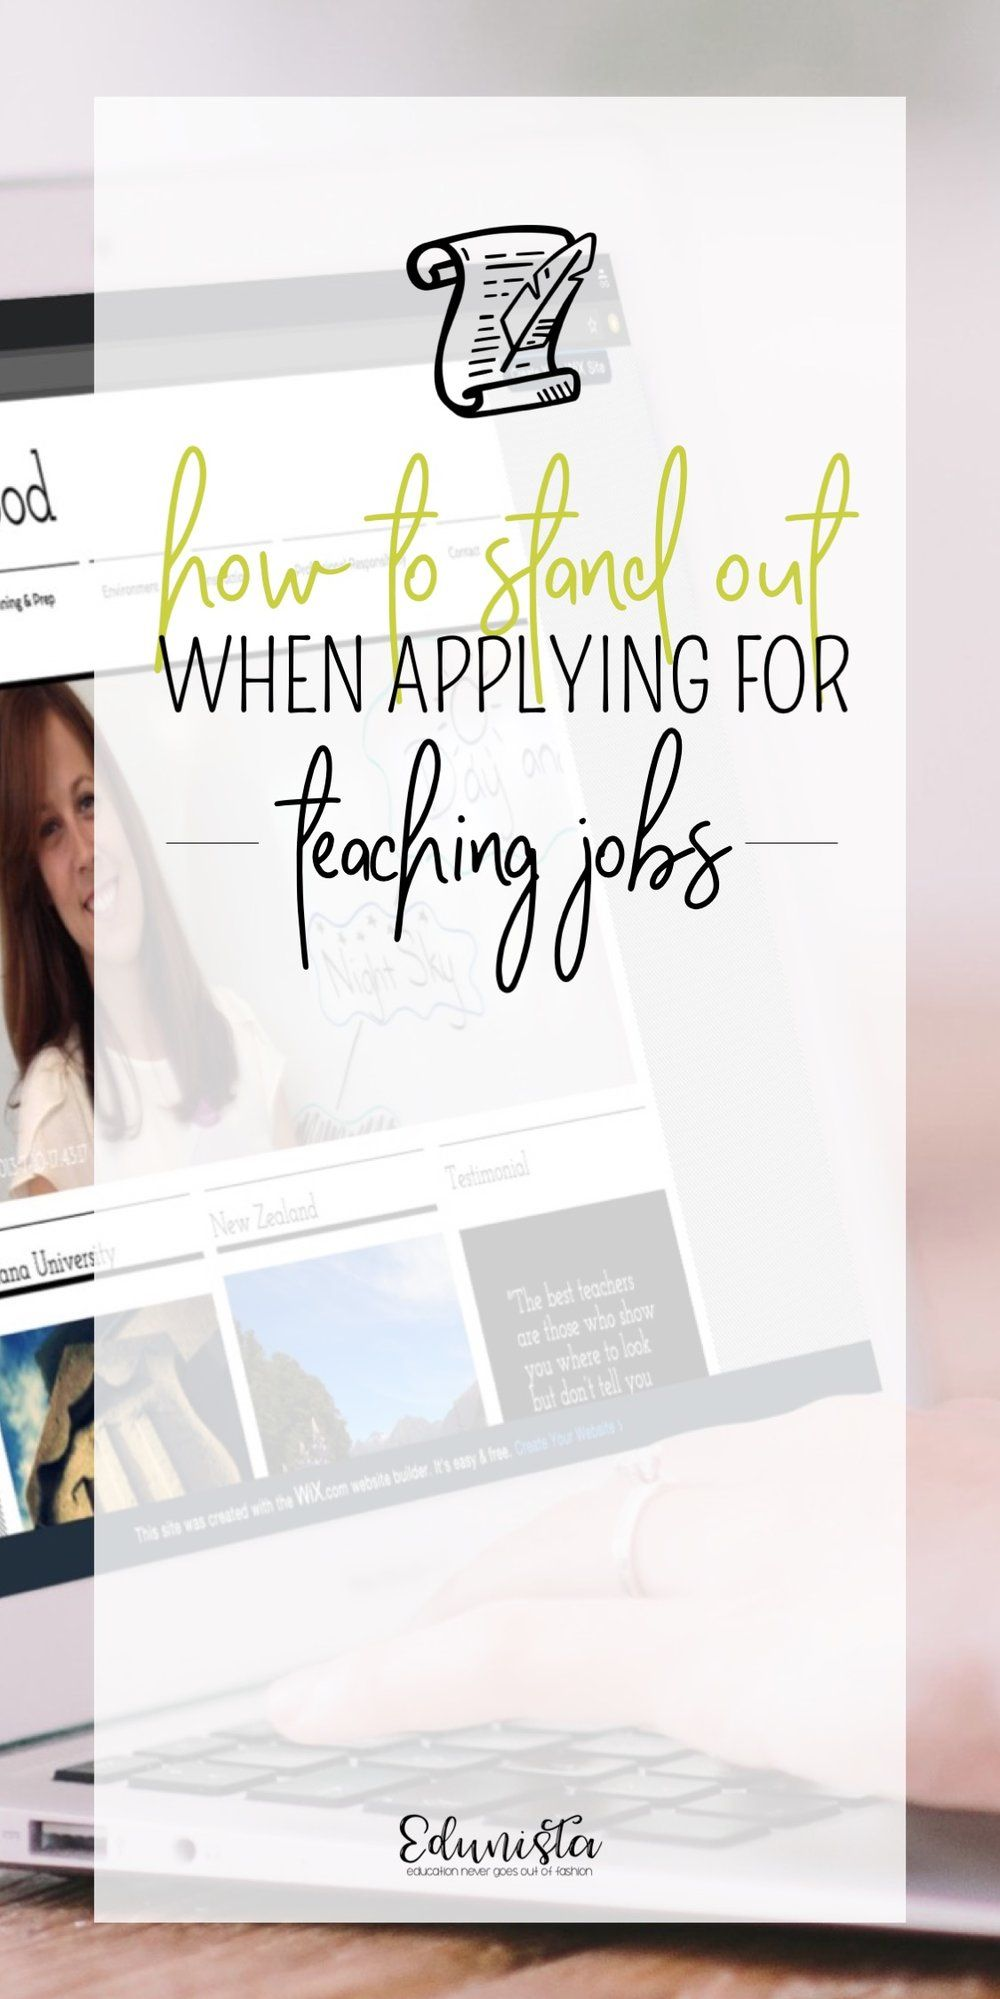 How to Stand Out when Applying for Teaching Jobs